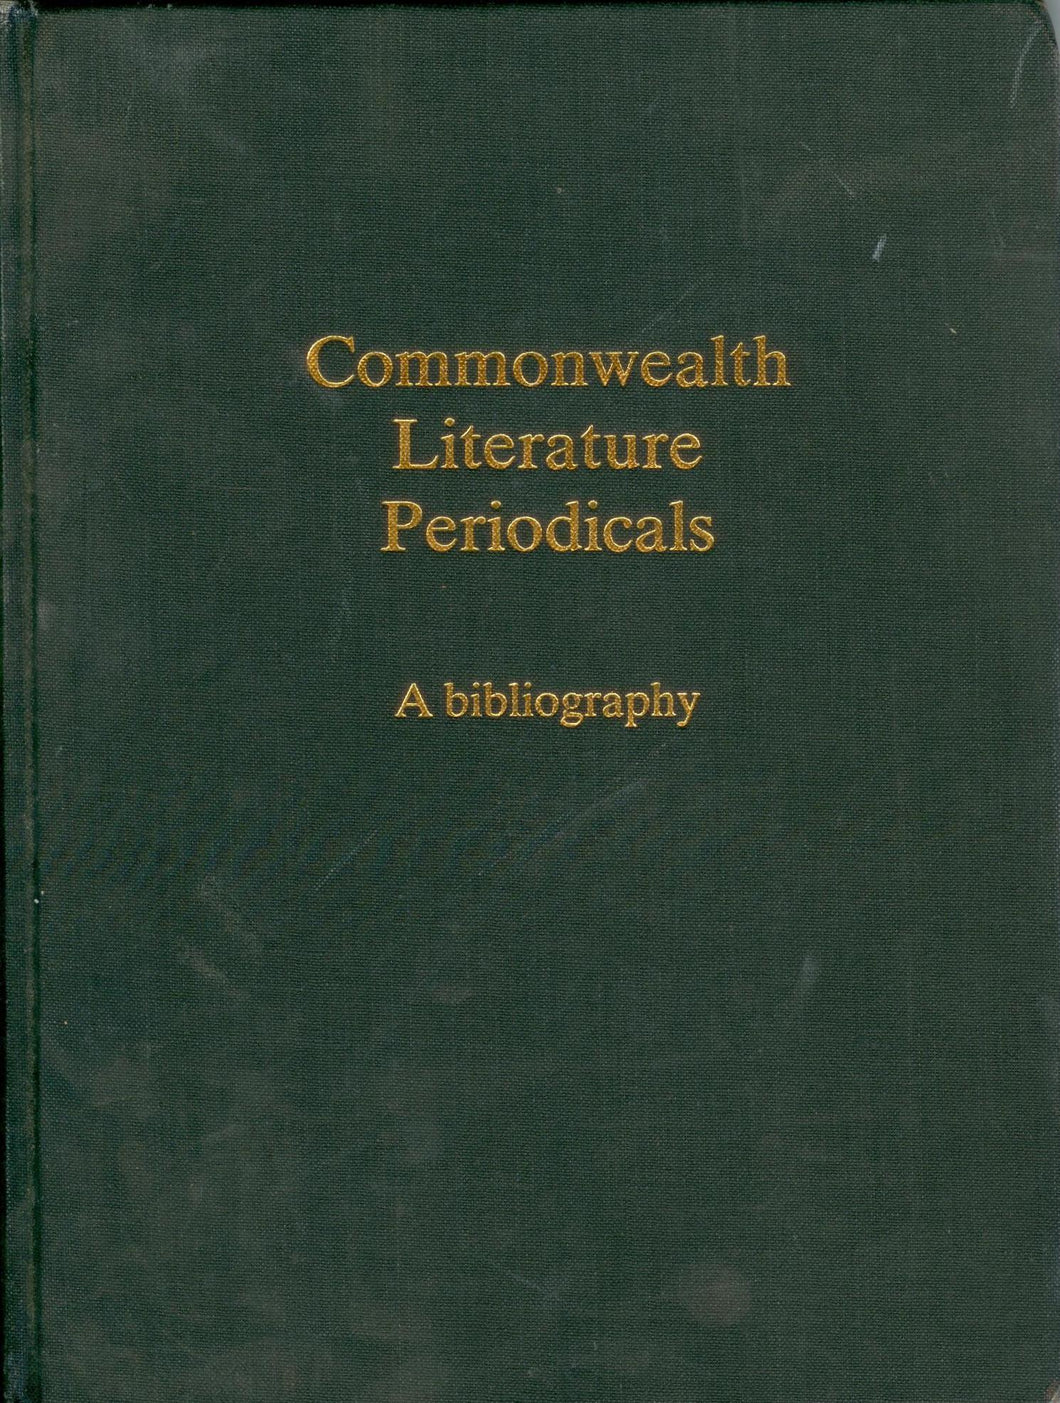 Commonwealth Literature Periodicals: A bibliography, including periodicals of former Commonwealth countries, with locations in the United Kingdom